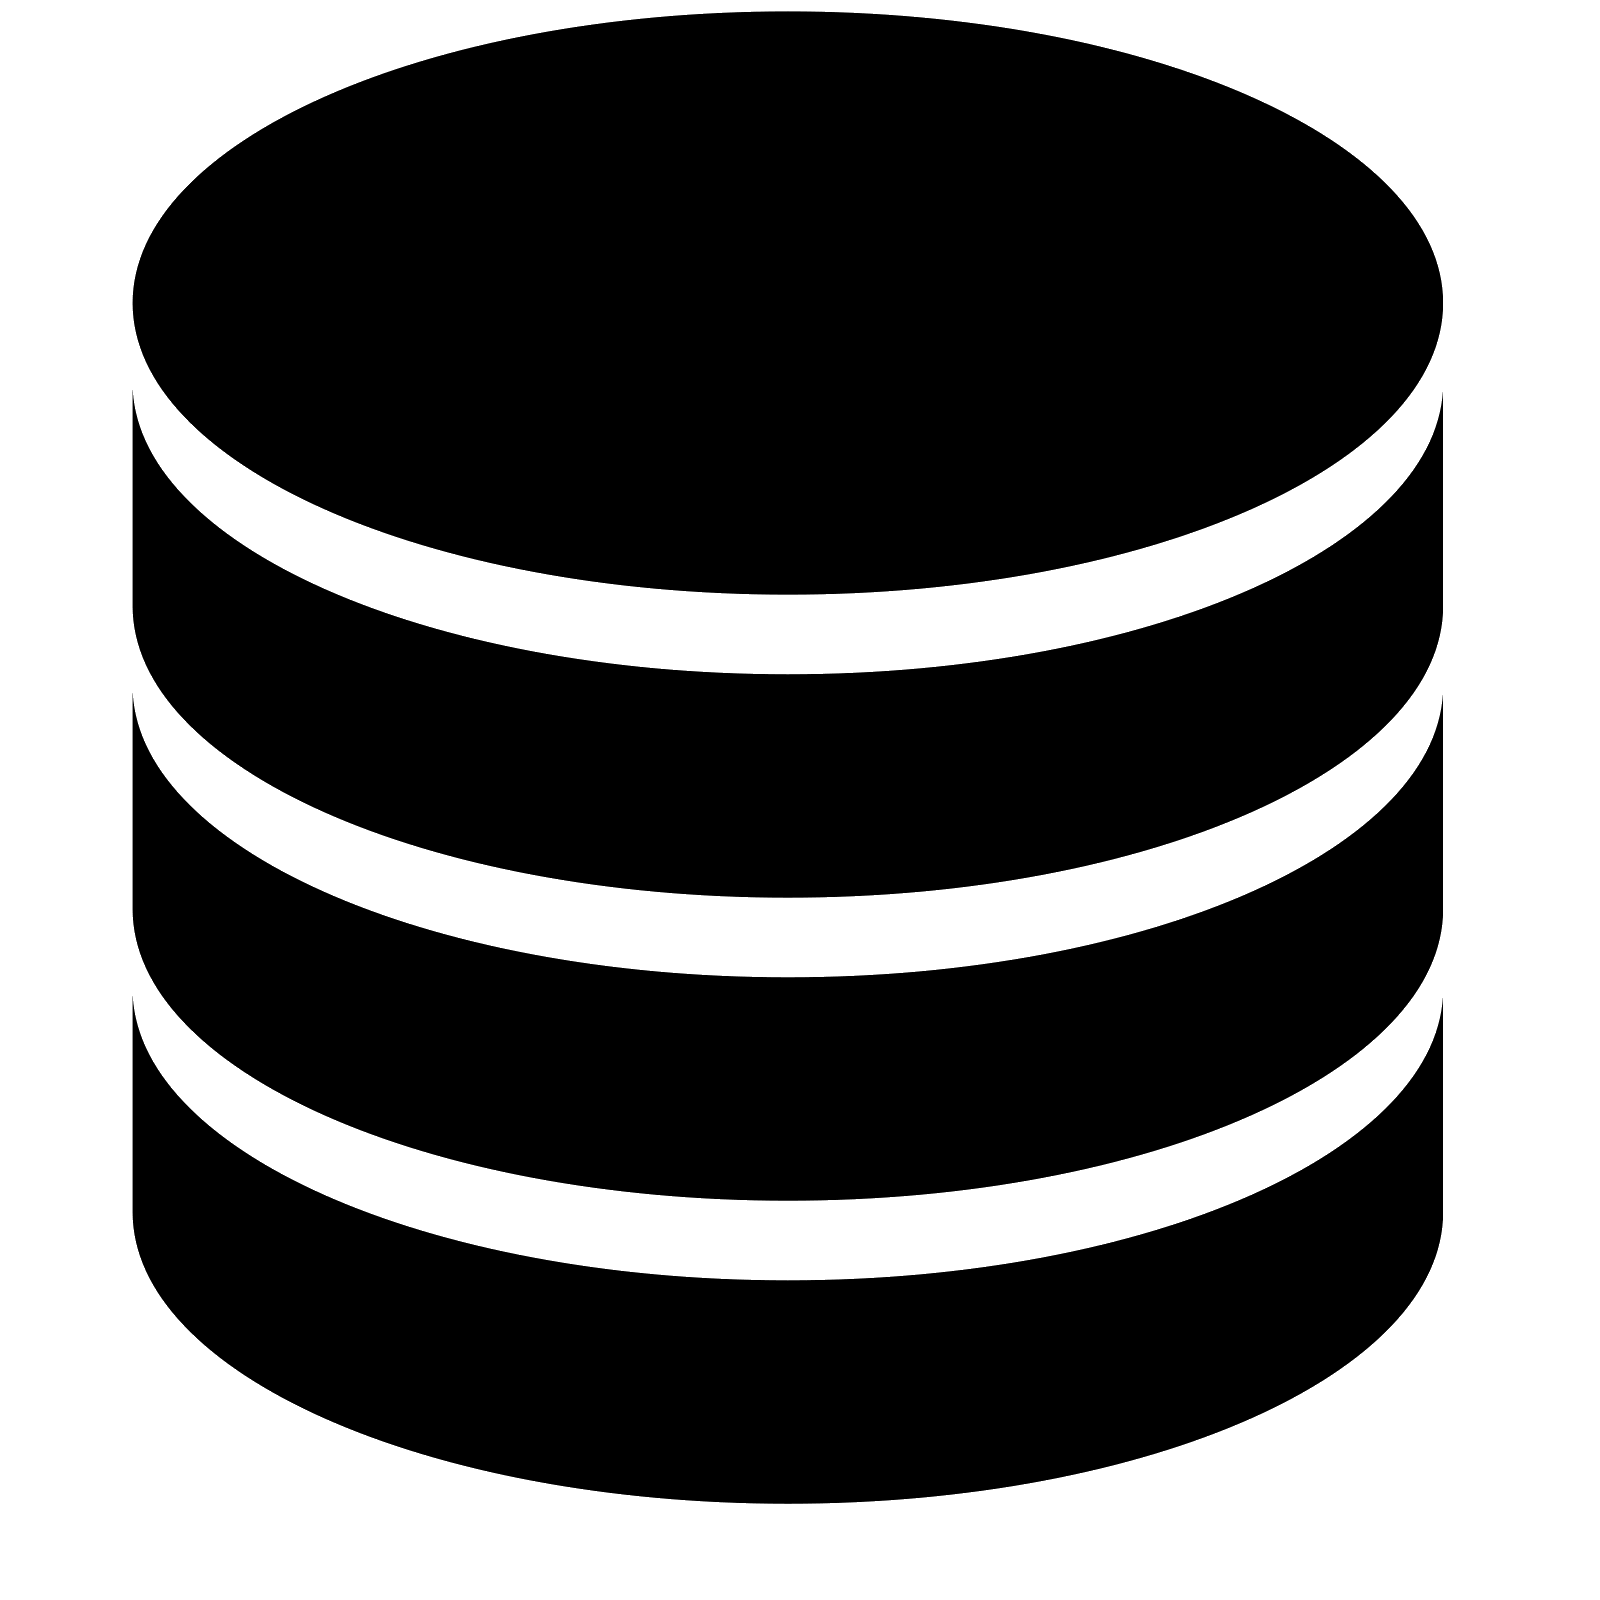 Database Png Icon #244760.